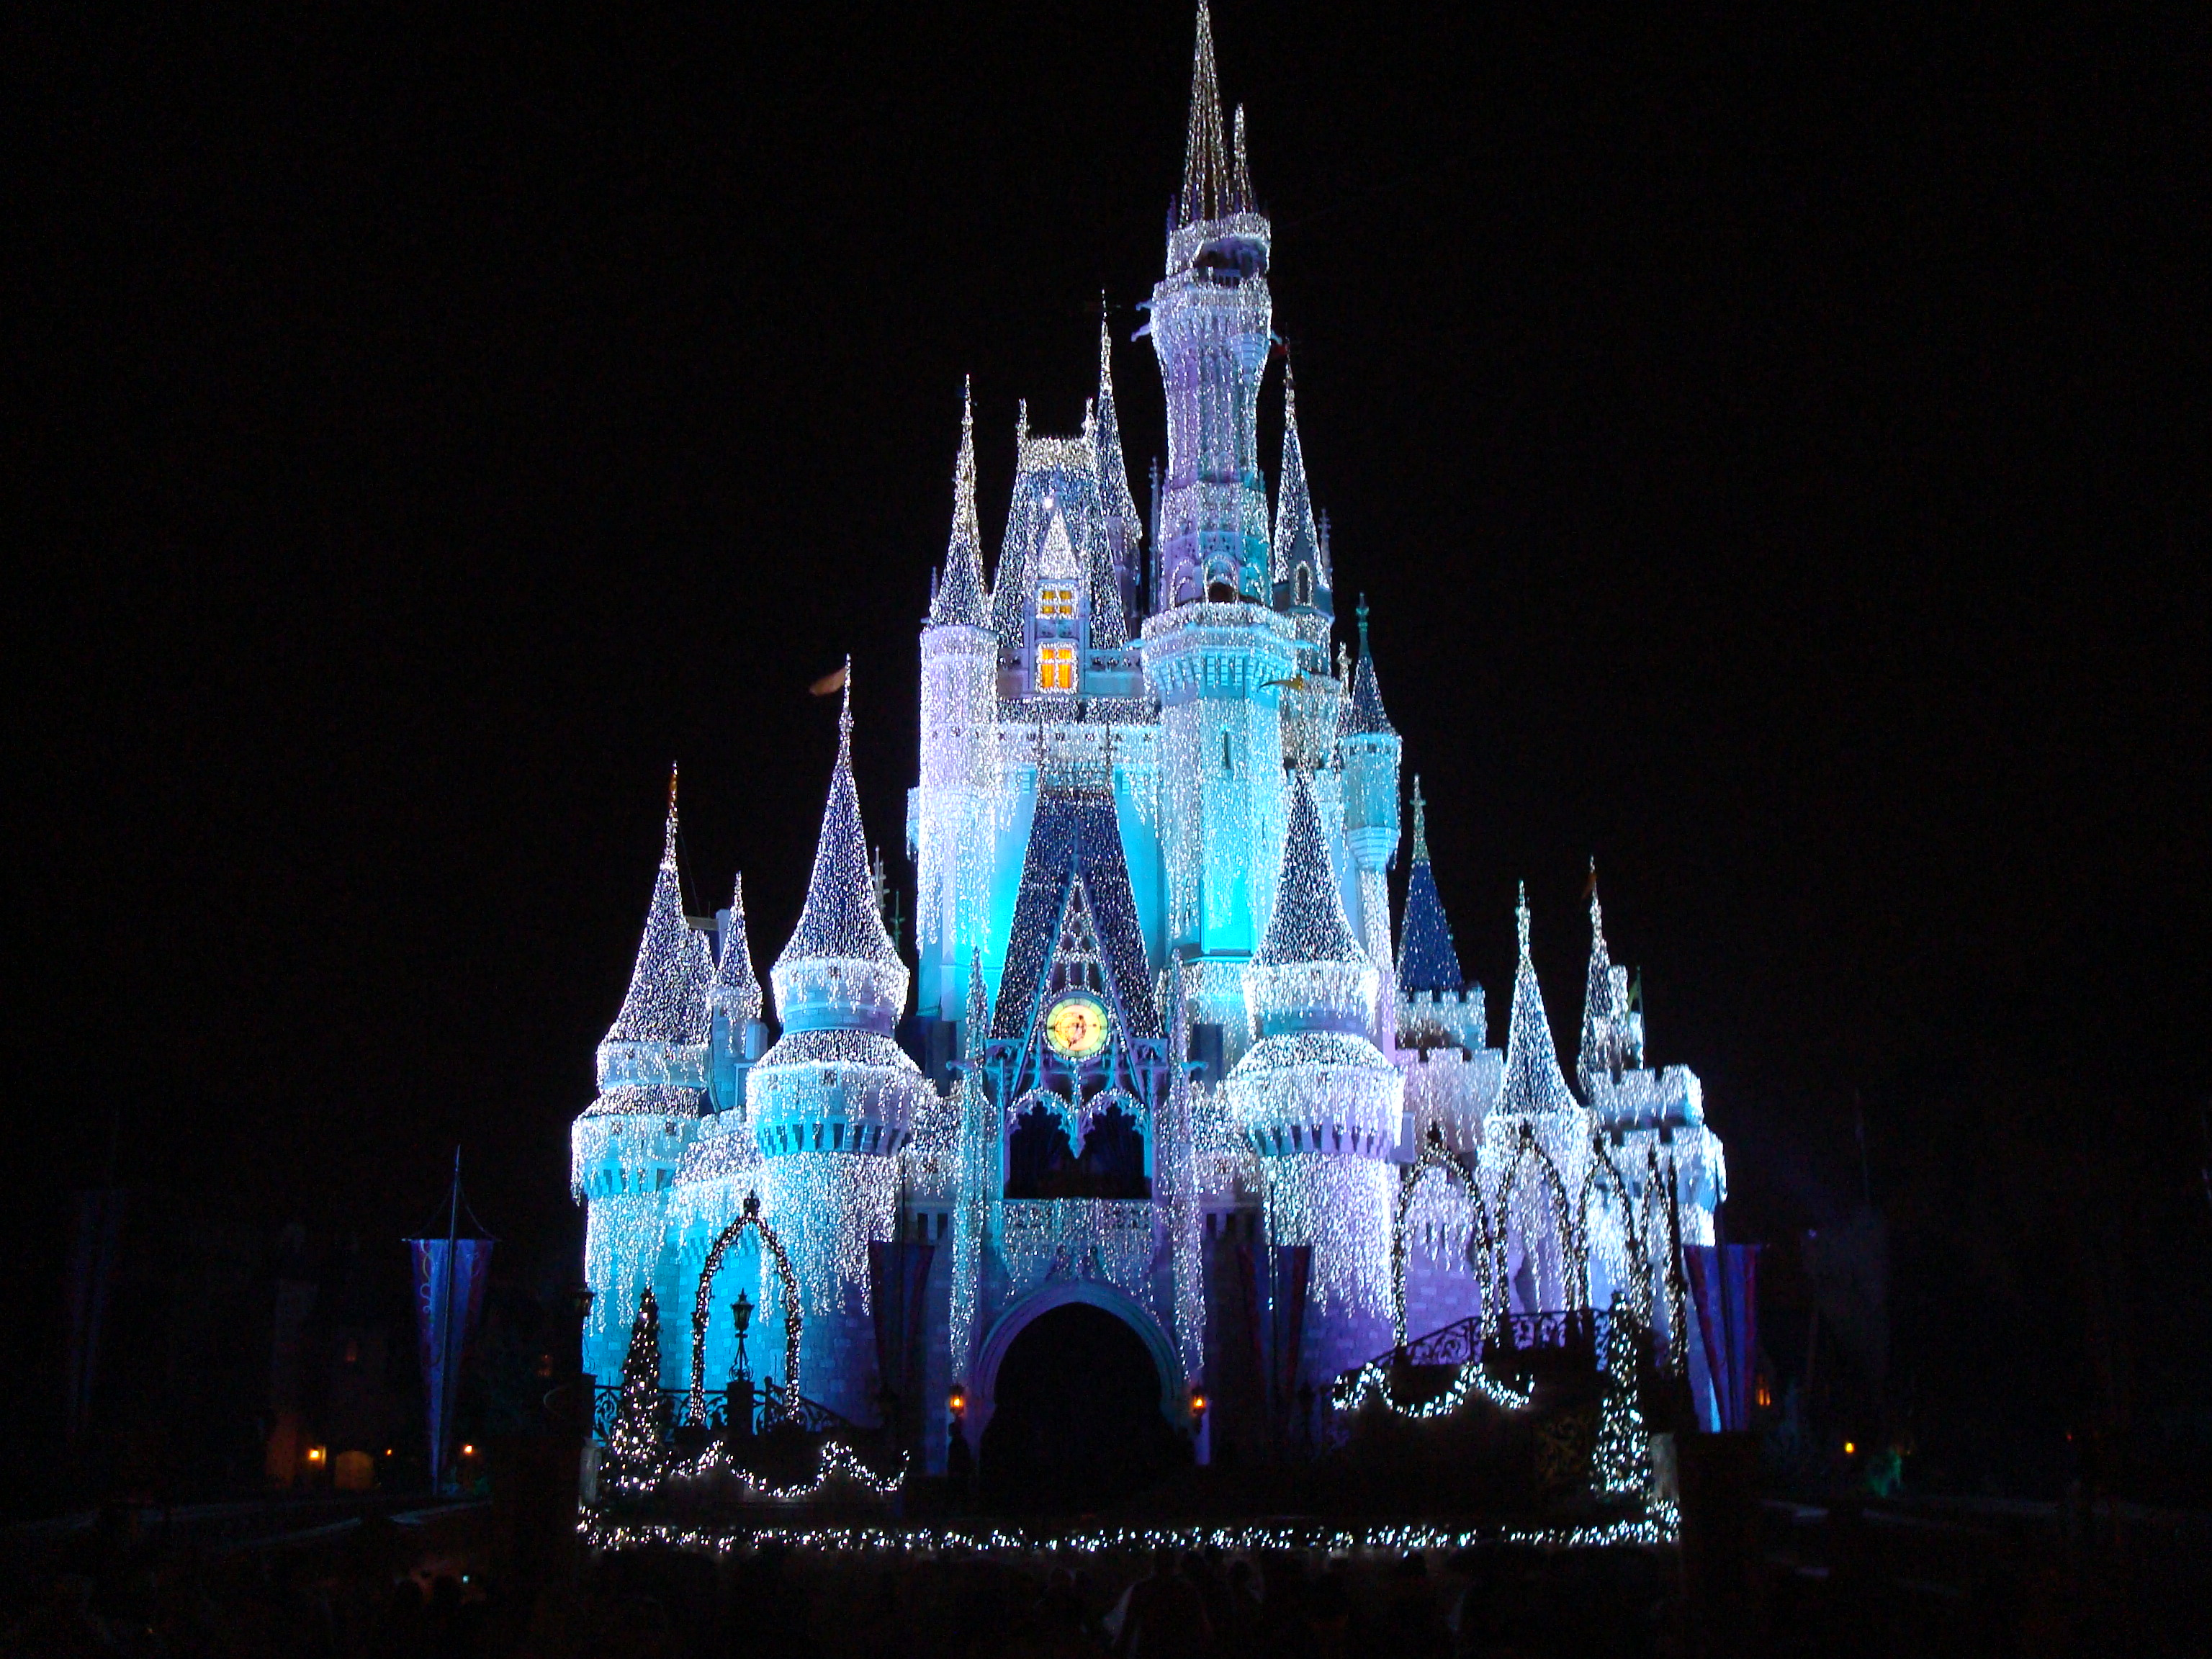 Throwback Thursday: Disney's Cinderella Castle Trivia!